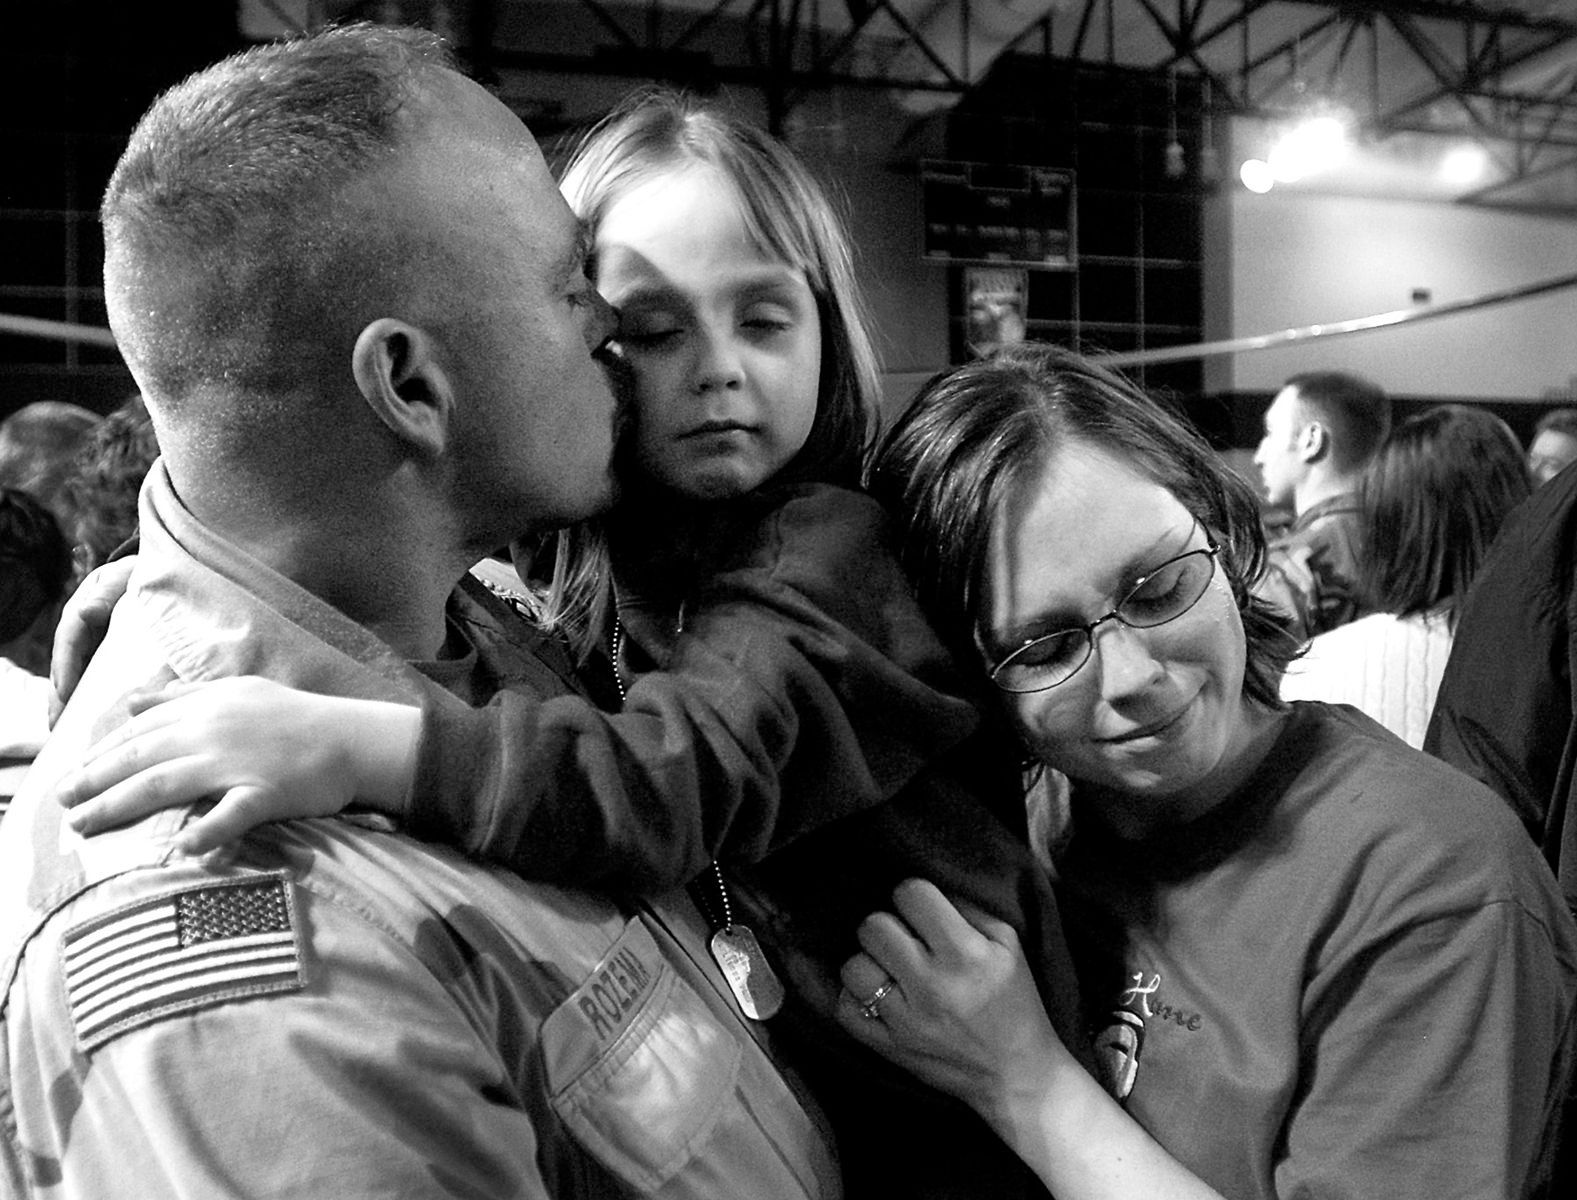 MILTARY | FAMILY TIME